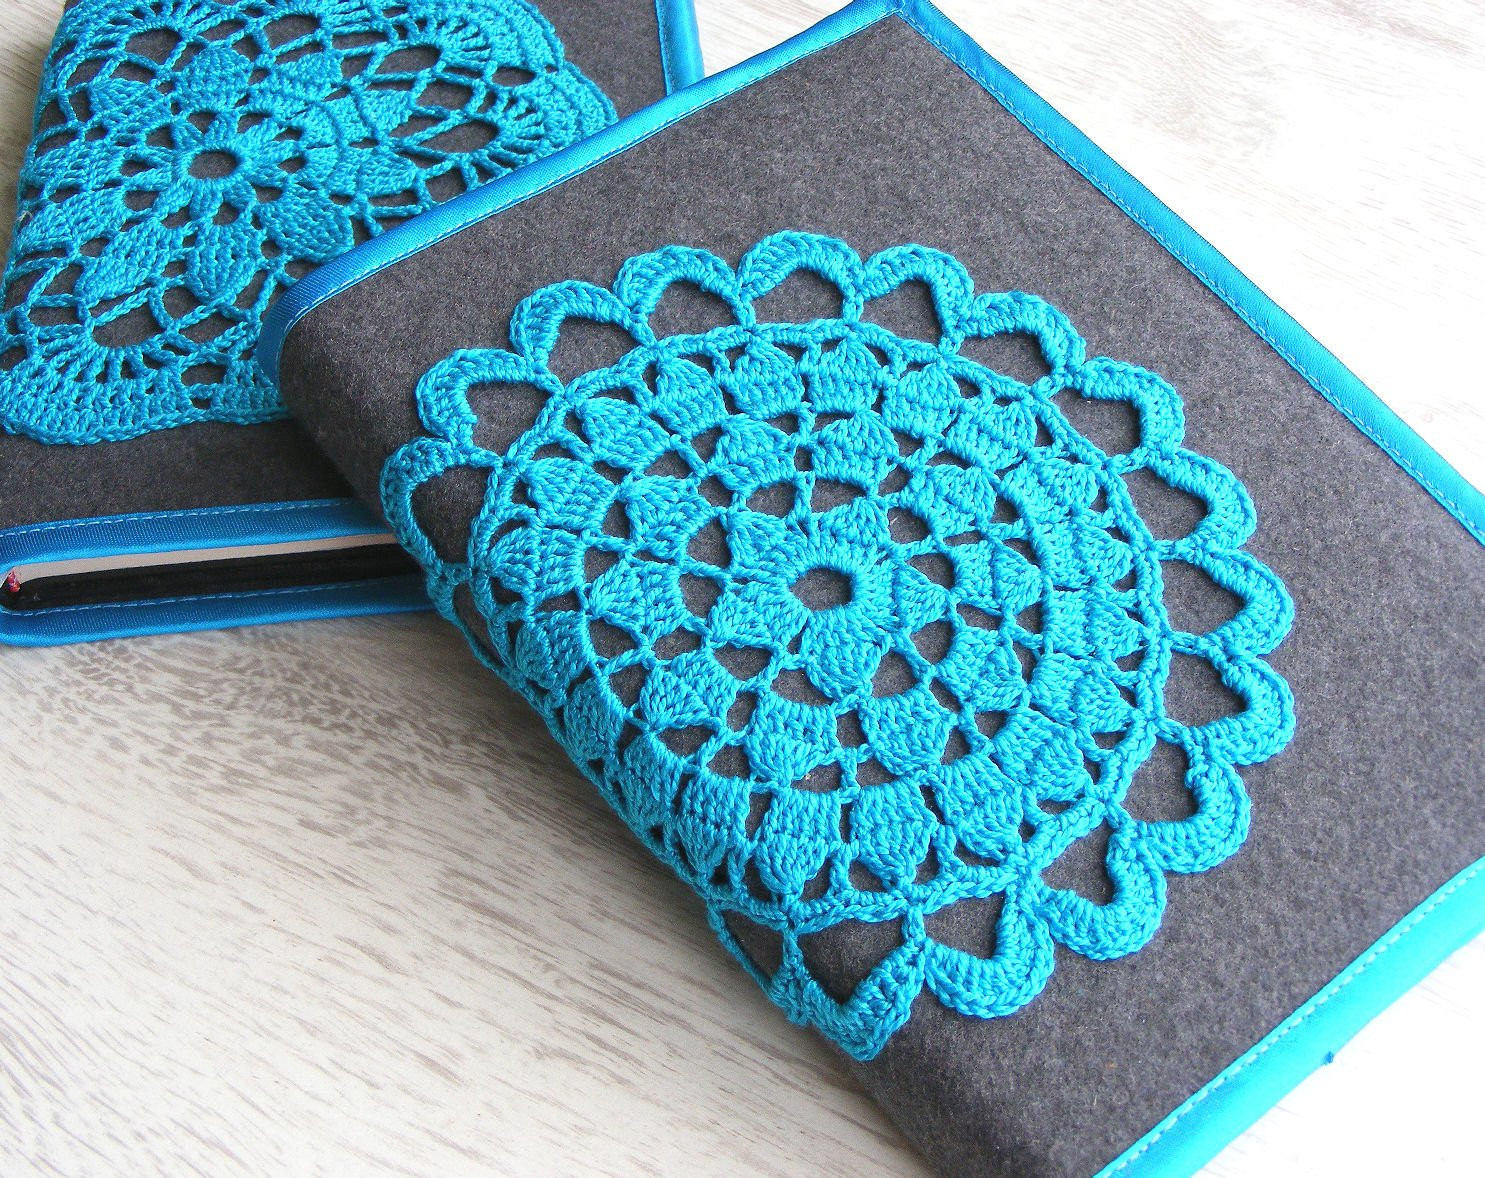 Crochet Bible Cover Elegant Notebook Cover with Crochet Motif Crocheted Journal Cover Of Wonderful 48 Models Crochet Bible Cover